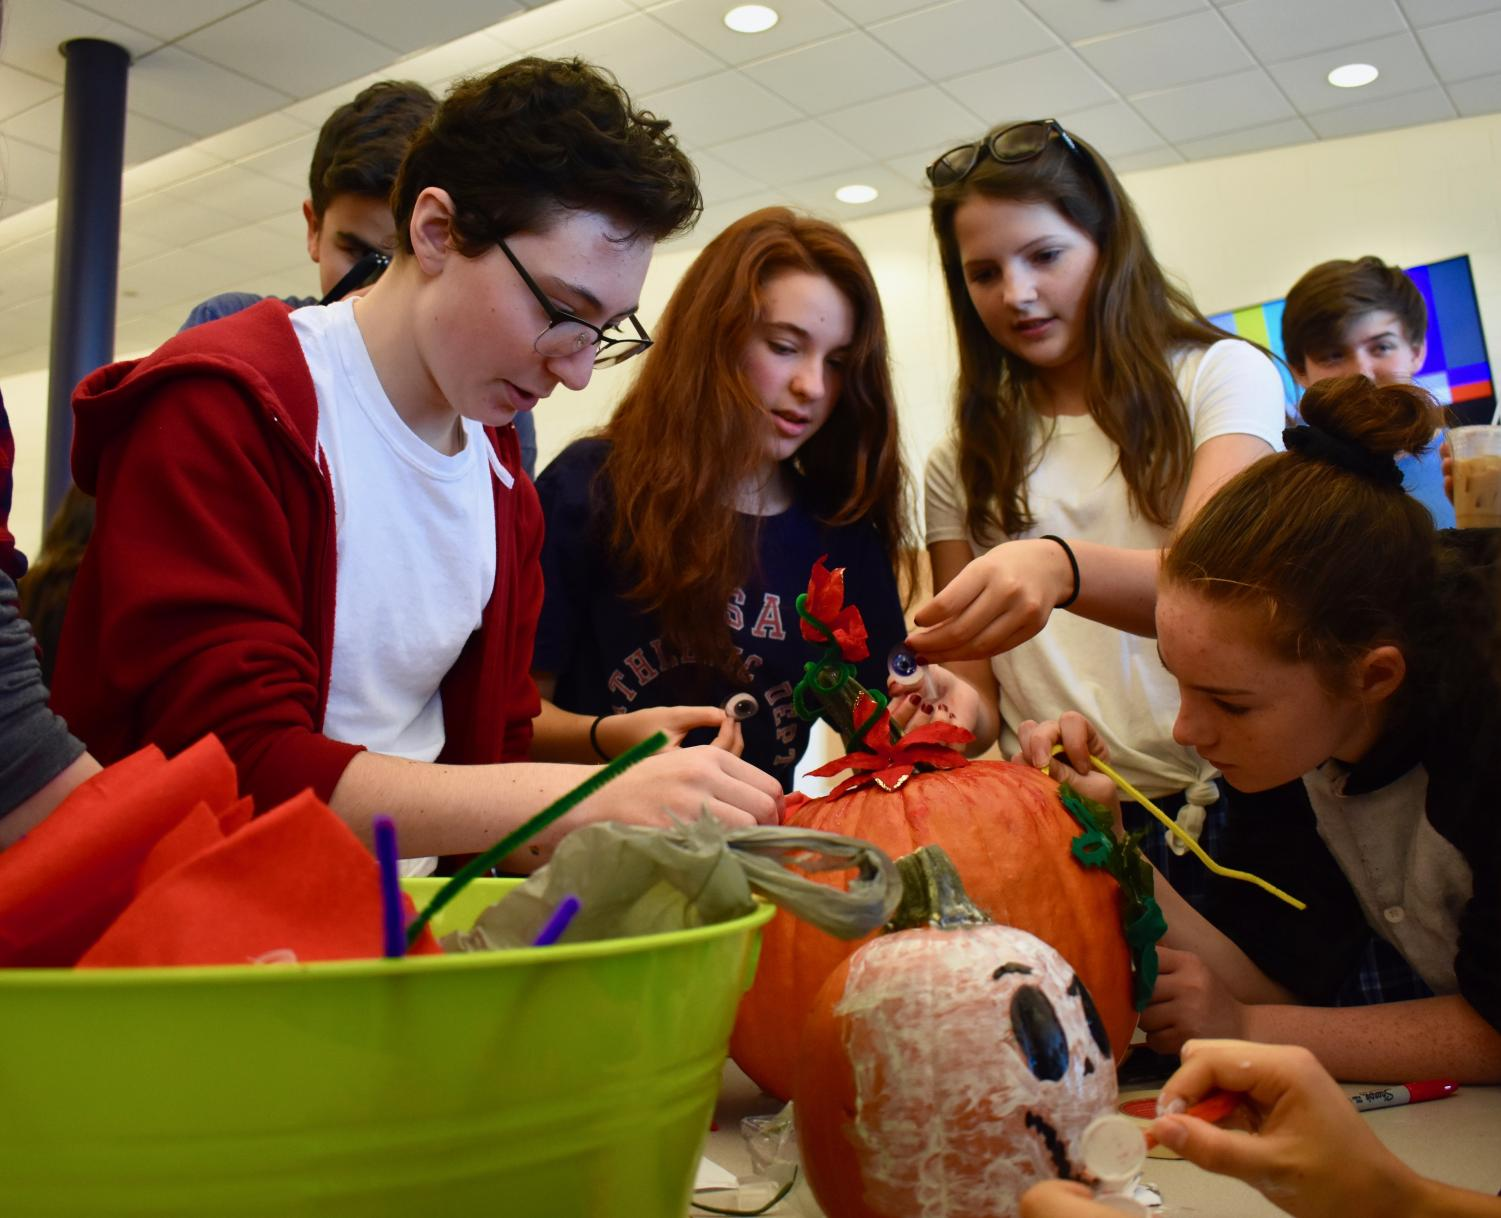 Freshmen+work+together+for+Tuesday%E2%80%99s+event%2C+the+Pumpkin-Decorating+Contest.+The+theme+was+%E2%80%9CThe+Nightmare+Before+Christmas.%E2%80%9D+